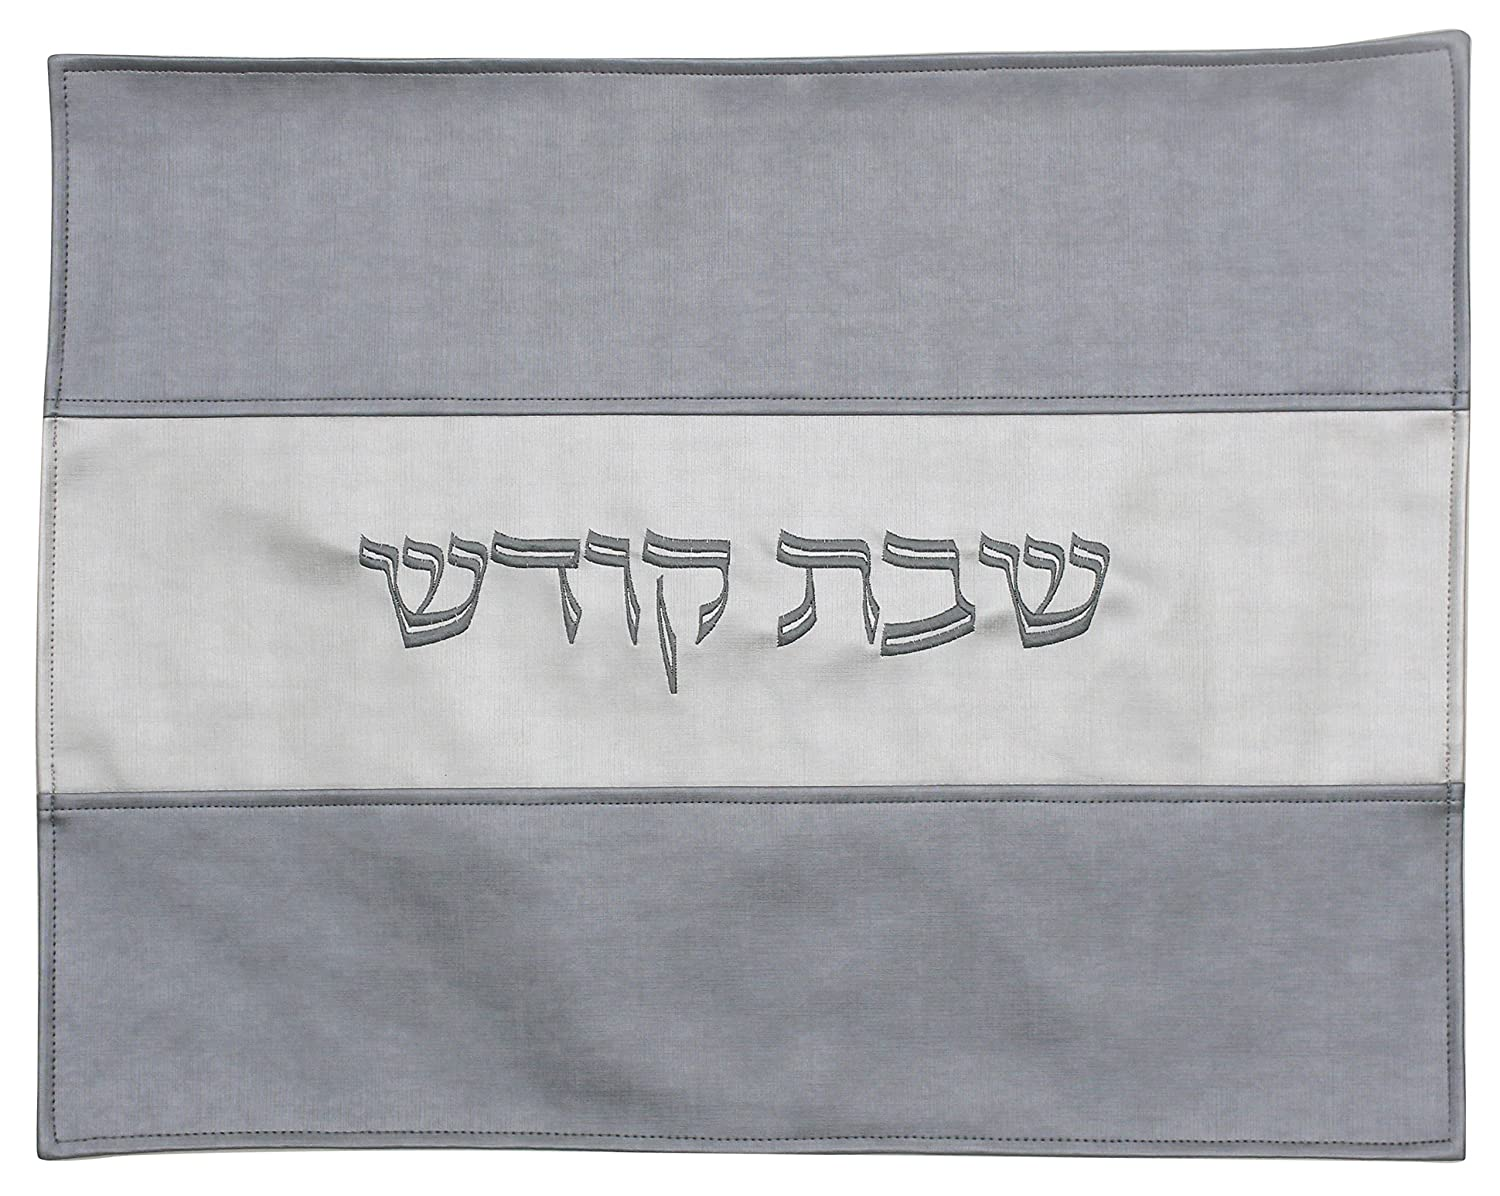 Majestic Giftware Light Color Block with Dark Grey Text Challah Cover Faux Leather, 22